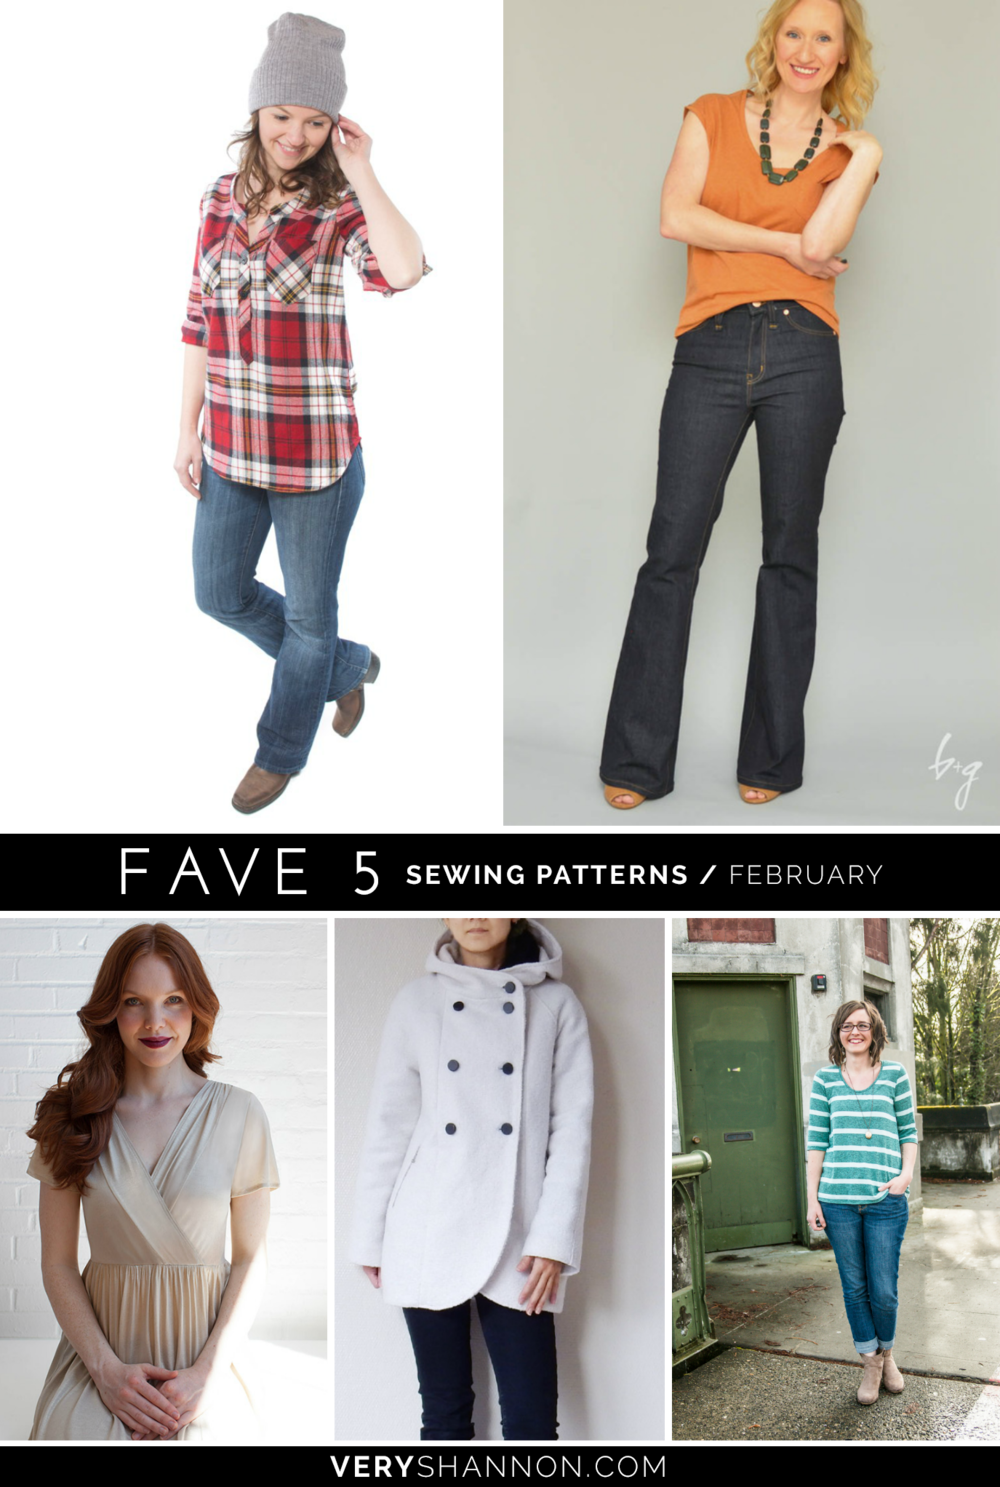 FAVE 5 Sewing Patterns February on VeryShannon.com